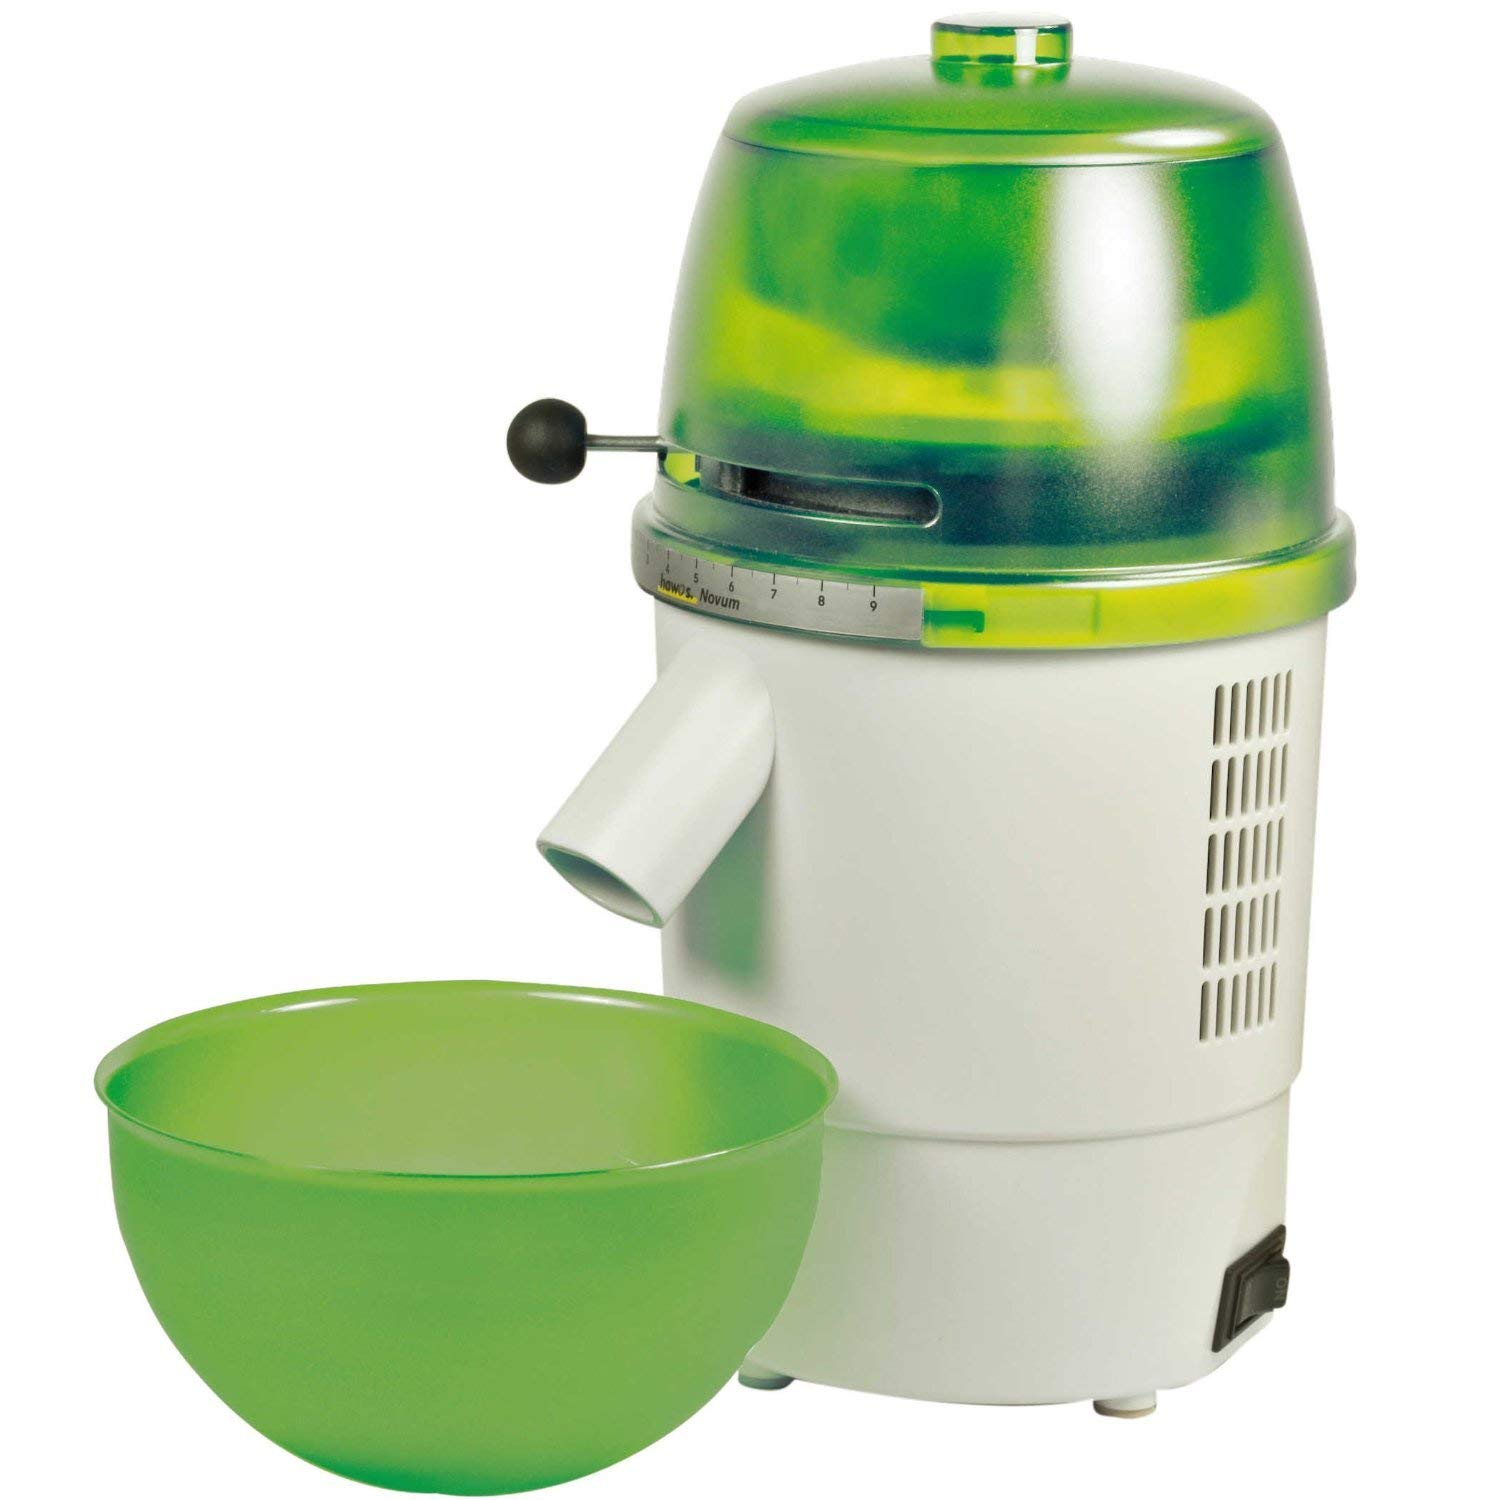 Hawos Novum Grain Mill with Funnel and Bowl Color: Green 220-240 Volt